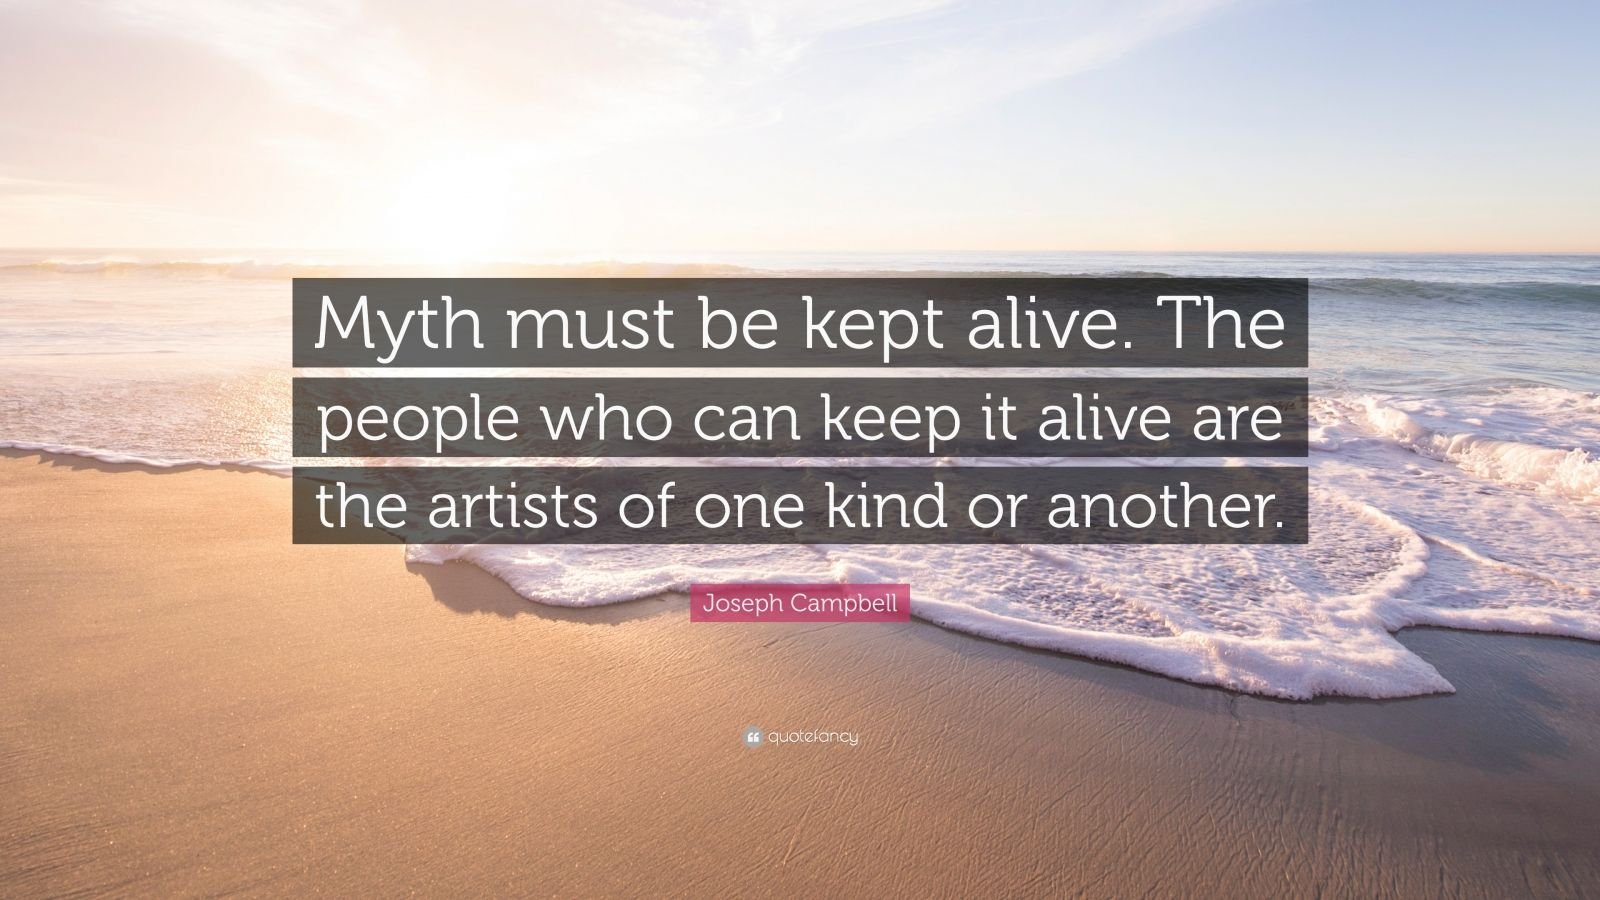 """Joseph Campbell Quote: """"Myth must be kept alive. The people who can keep it alive are the artists of one kind or another."""""""